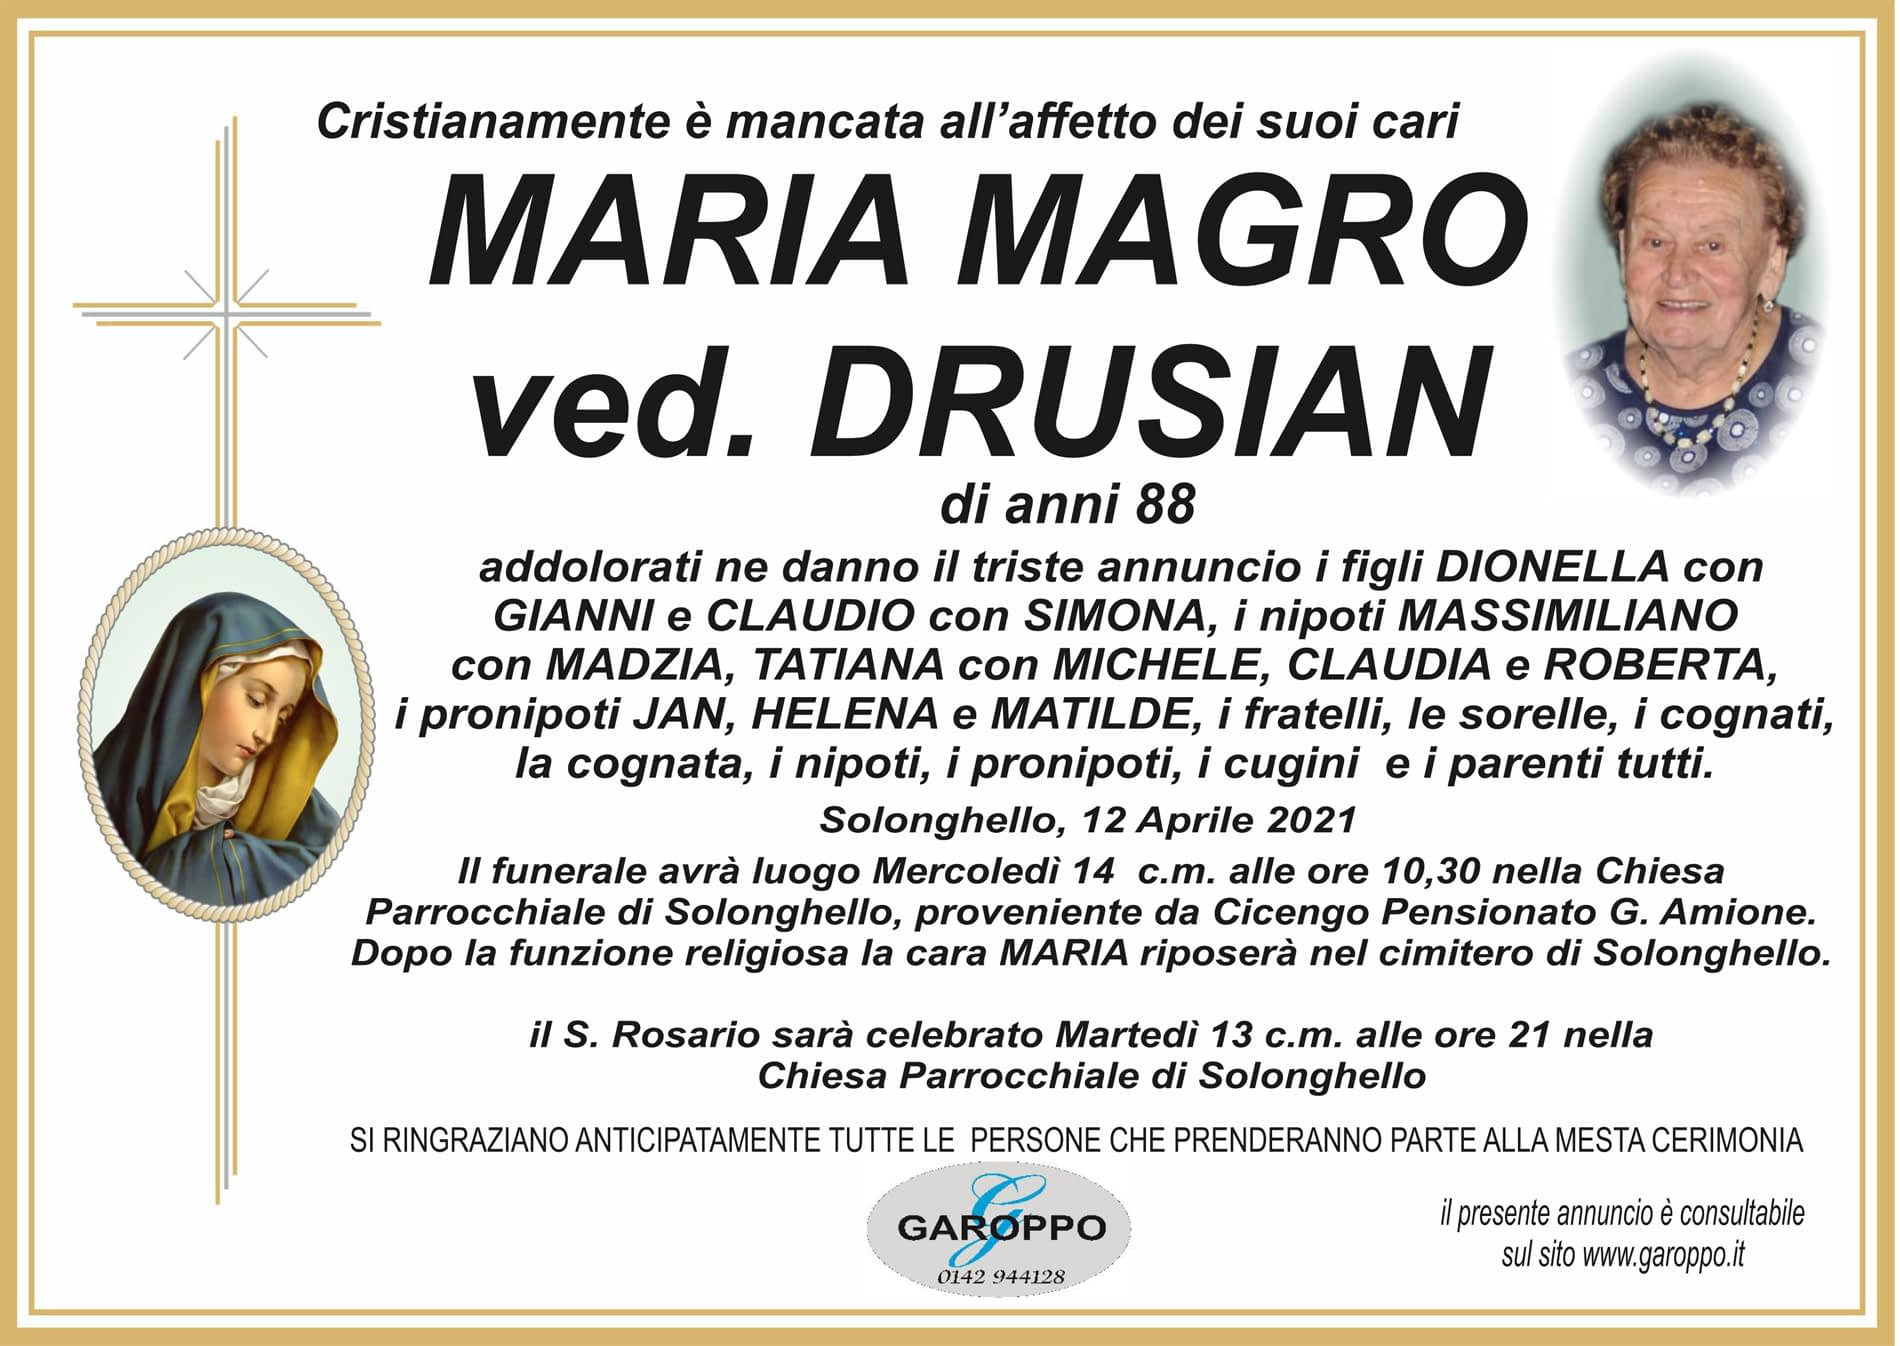 MAGRO MARIA VED. DRUSIAN